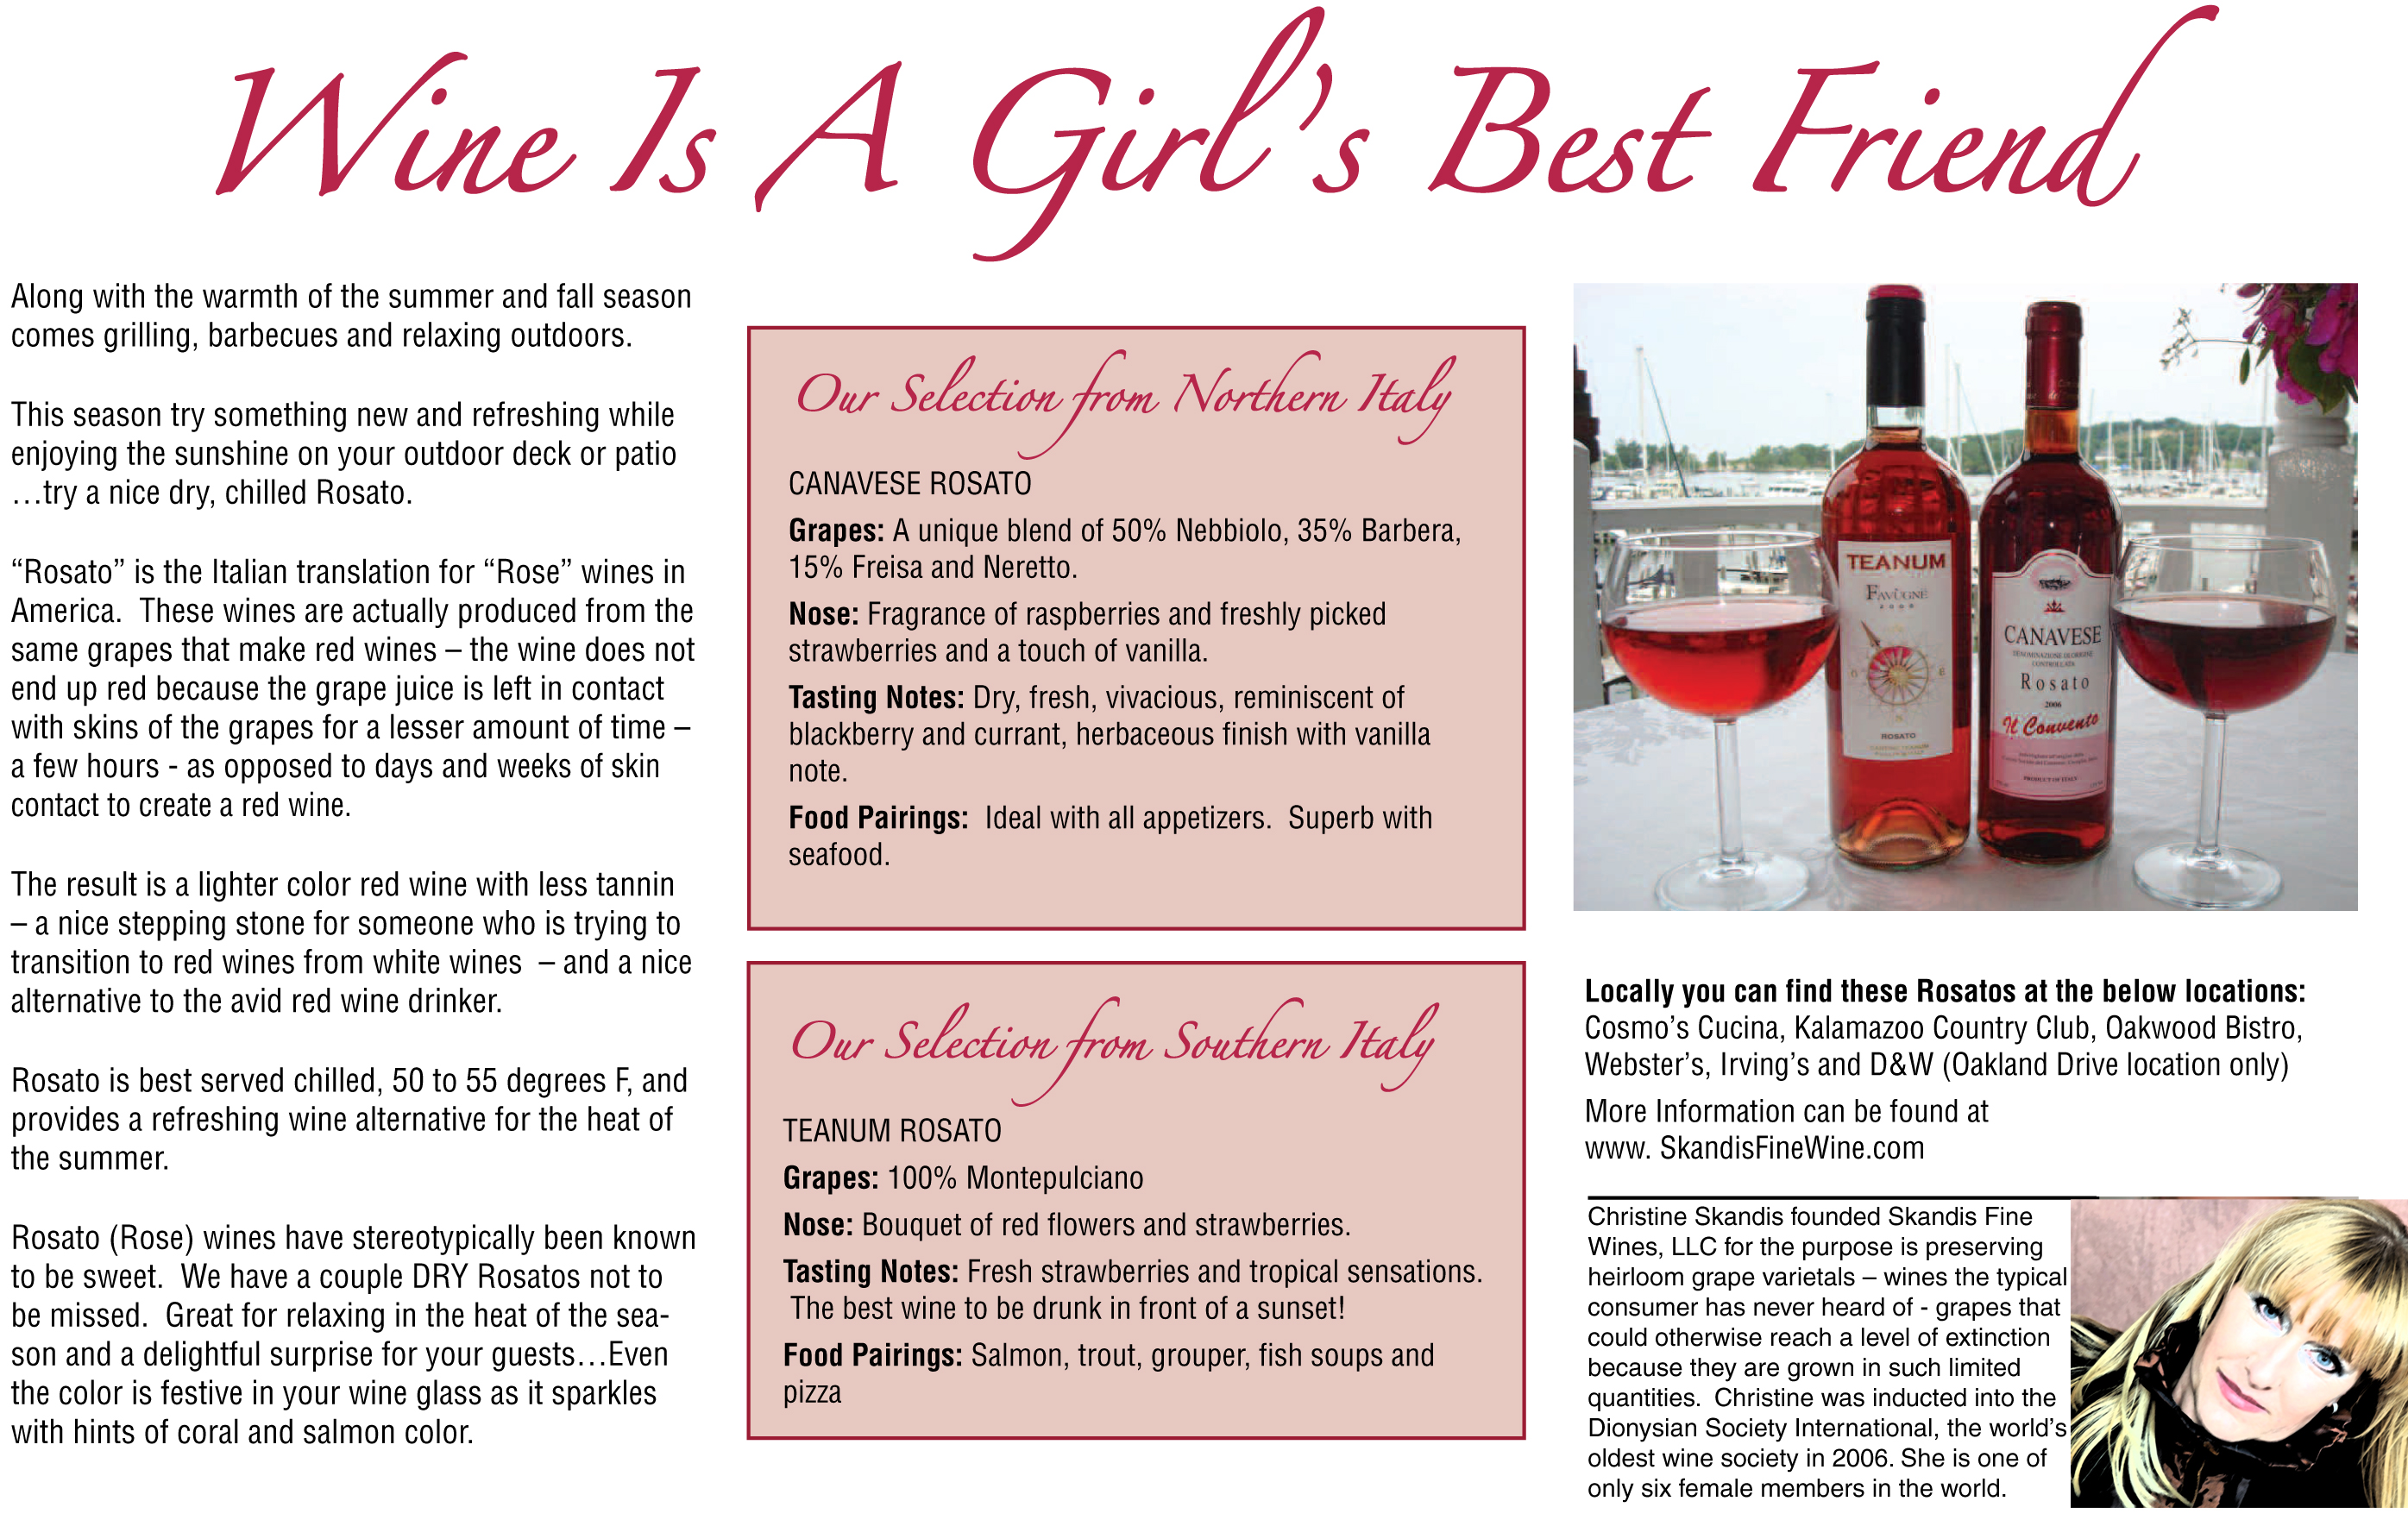 Skandis_Wine Is A Girl's Best Friend_2011 07_Rosato_new face